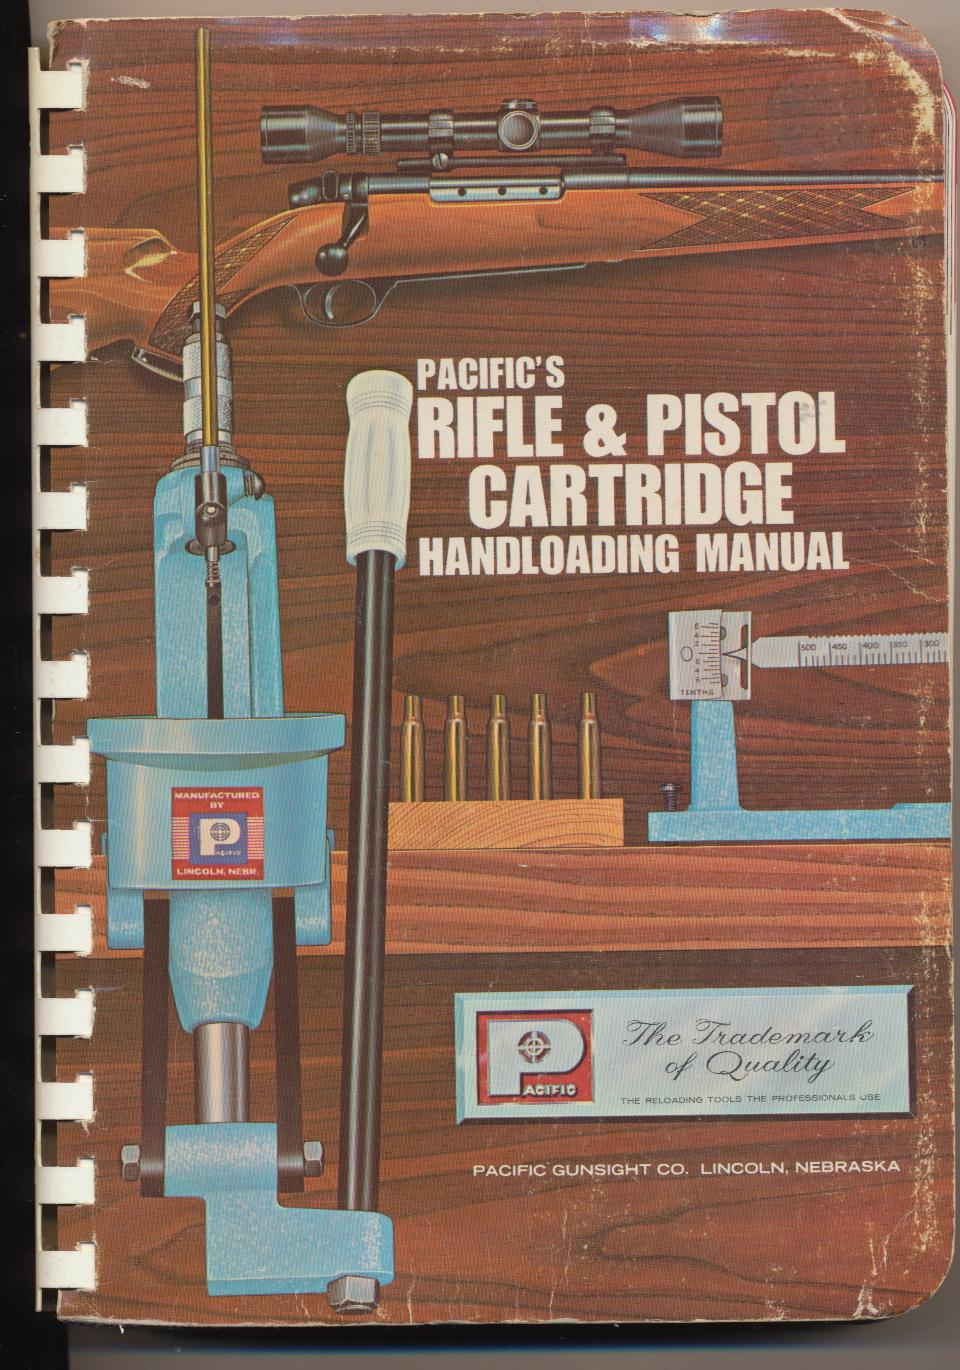 1968 Pacific's Rifle & Pistol Cartridge Handloading Manual